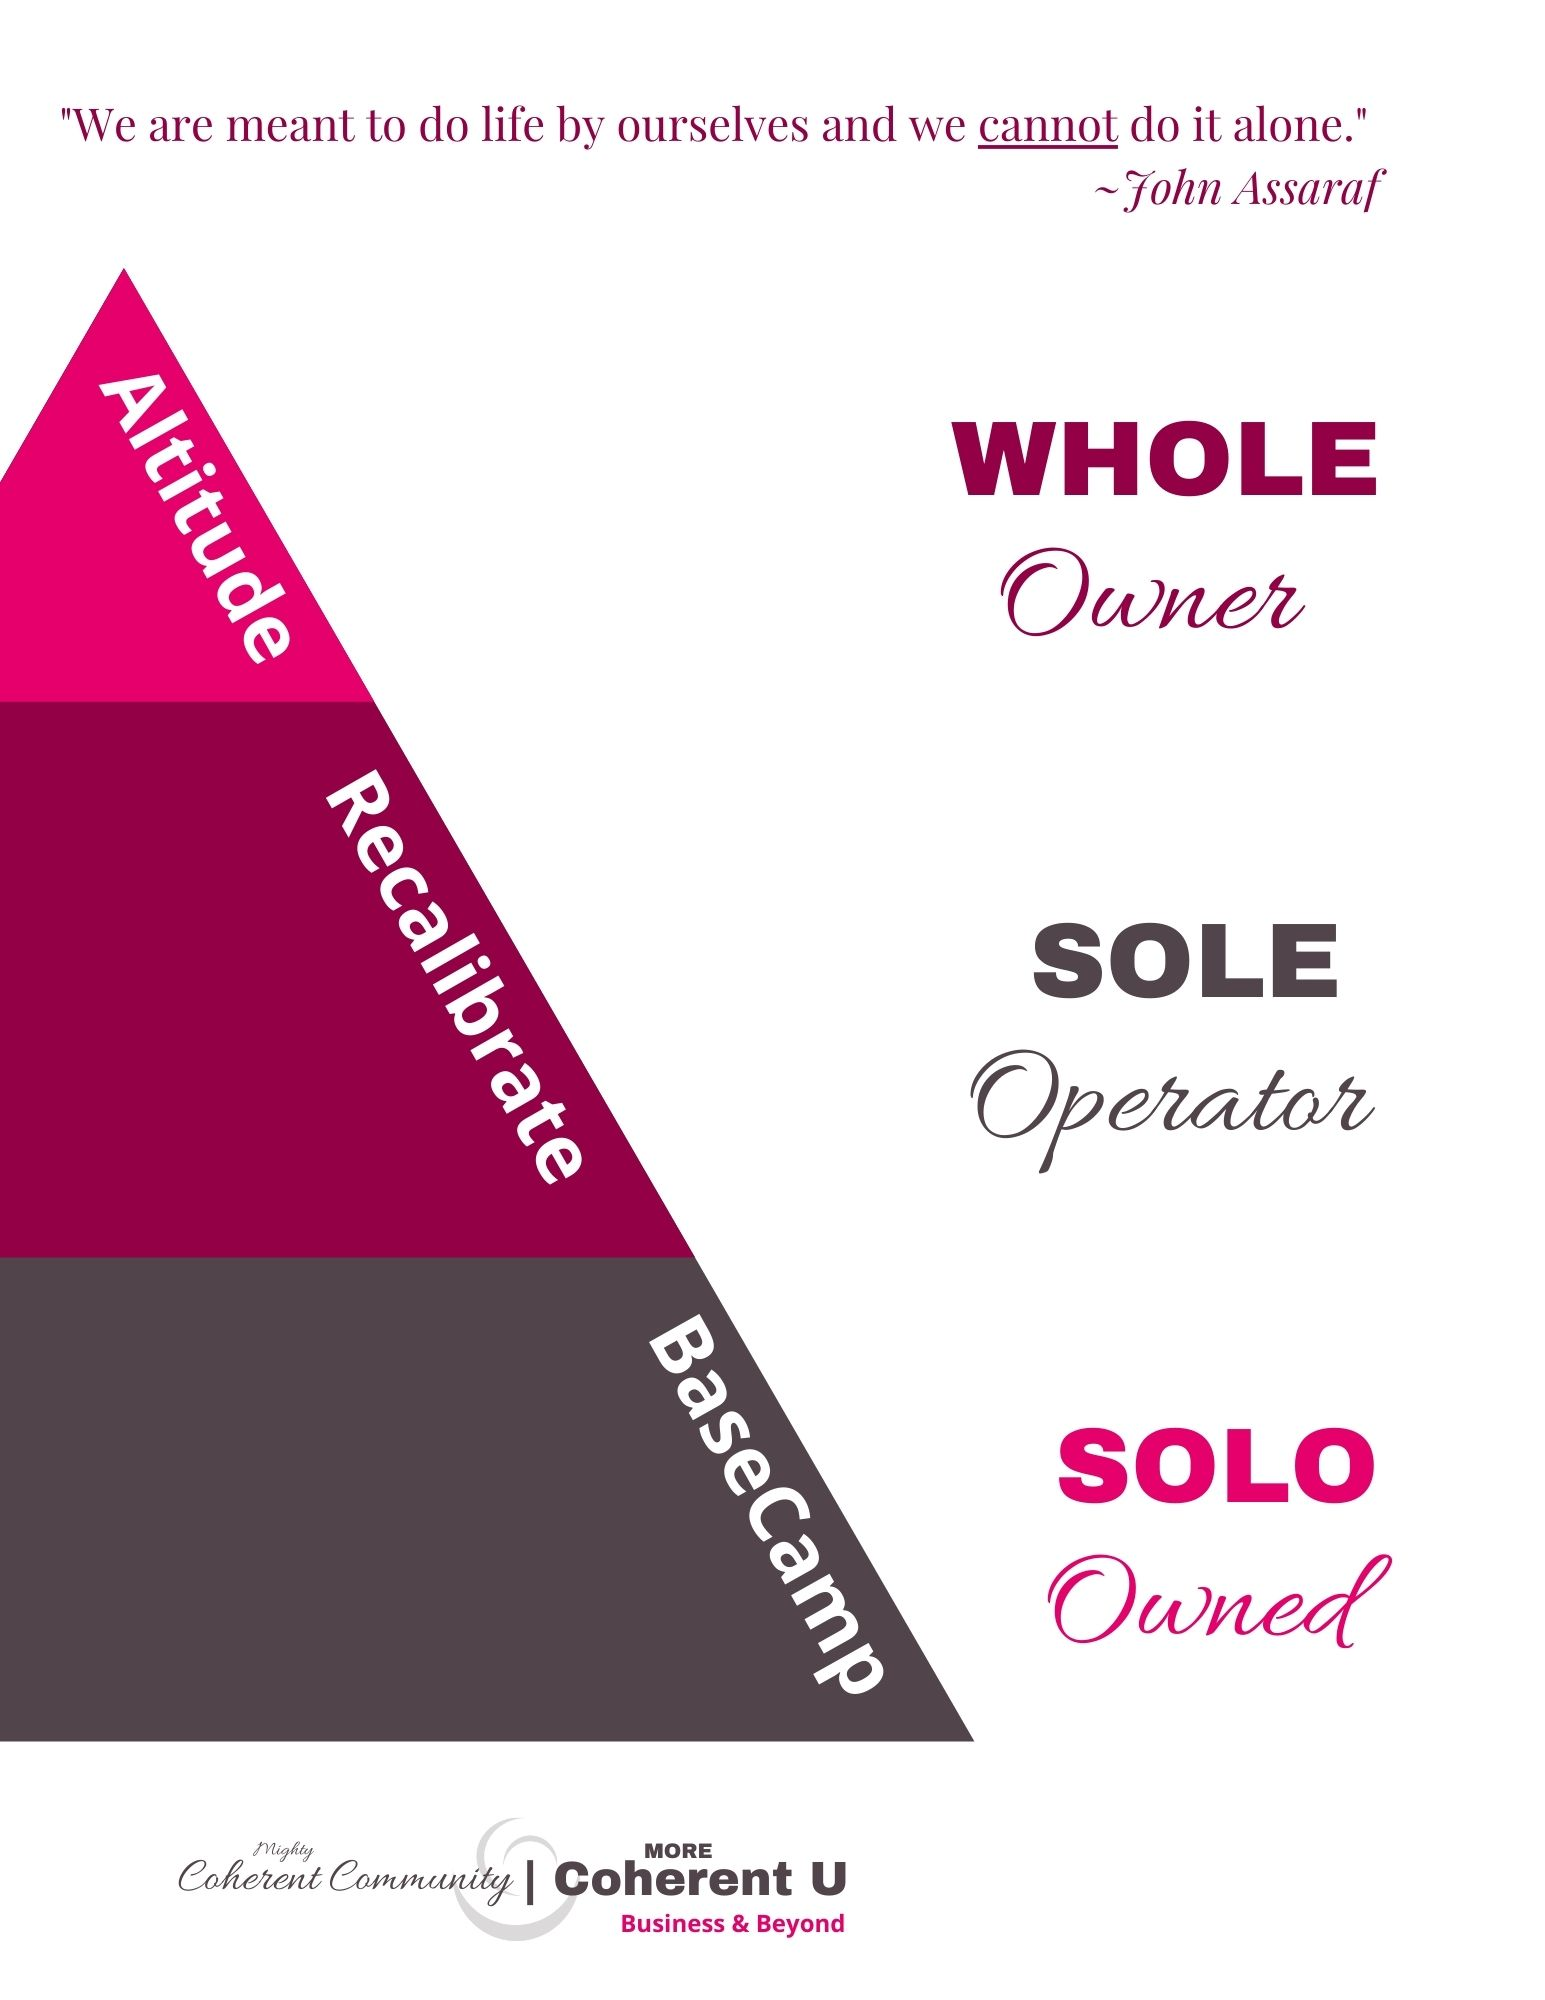 SOLOS, SOLE AND WHOLE